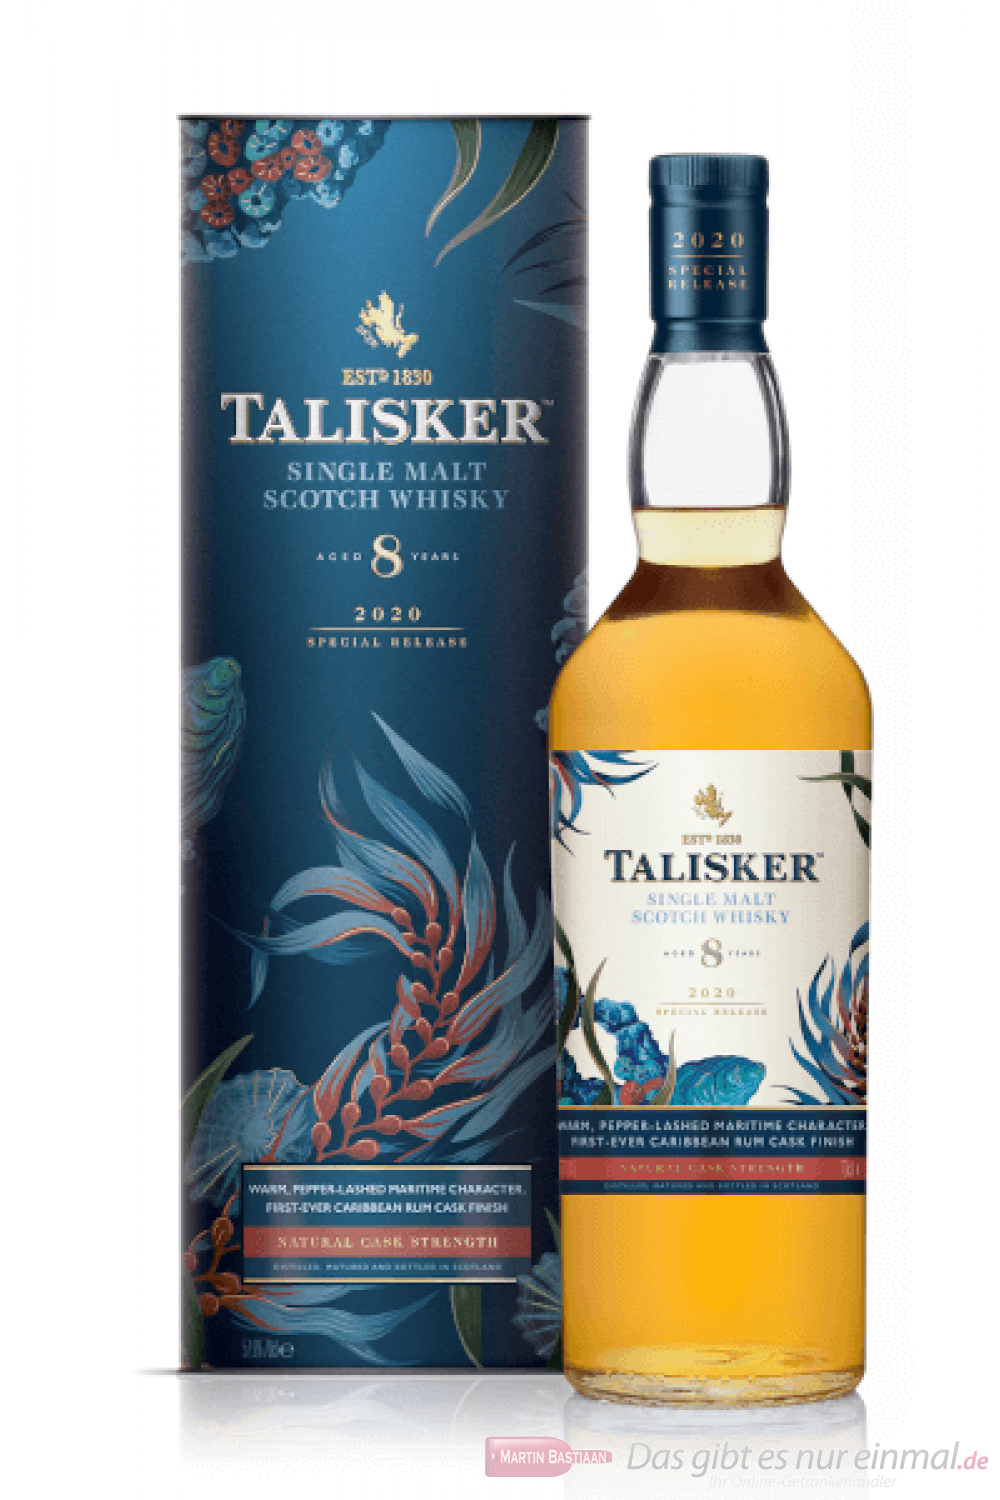 Talisker 8 Years Special Release 2020 Whisky 0,7l